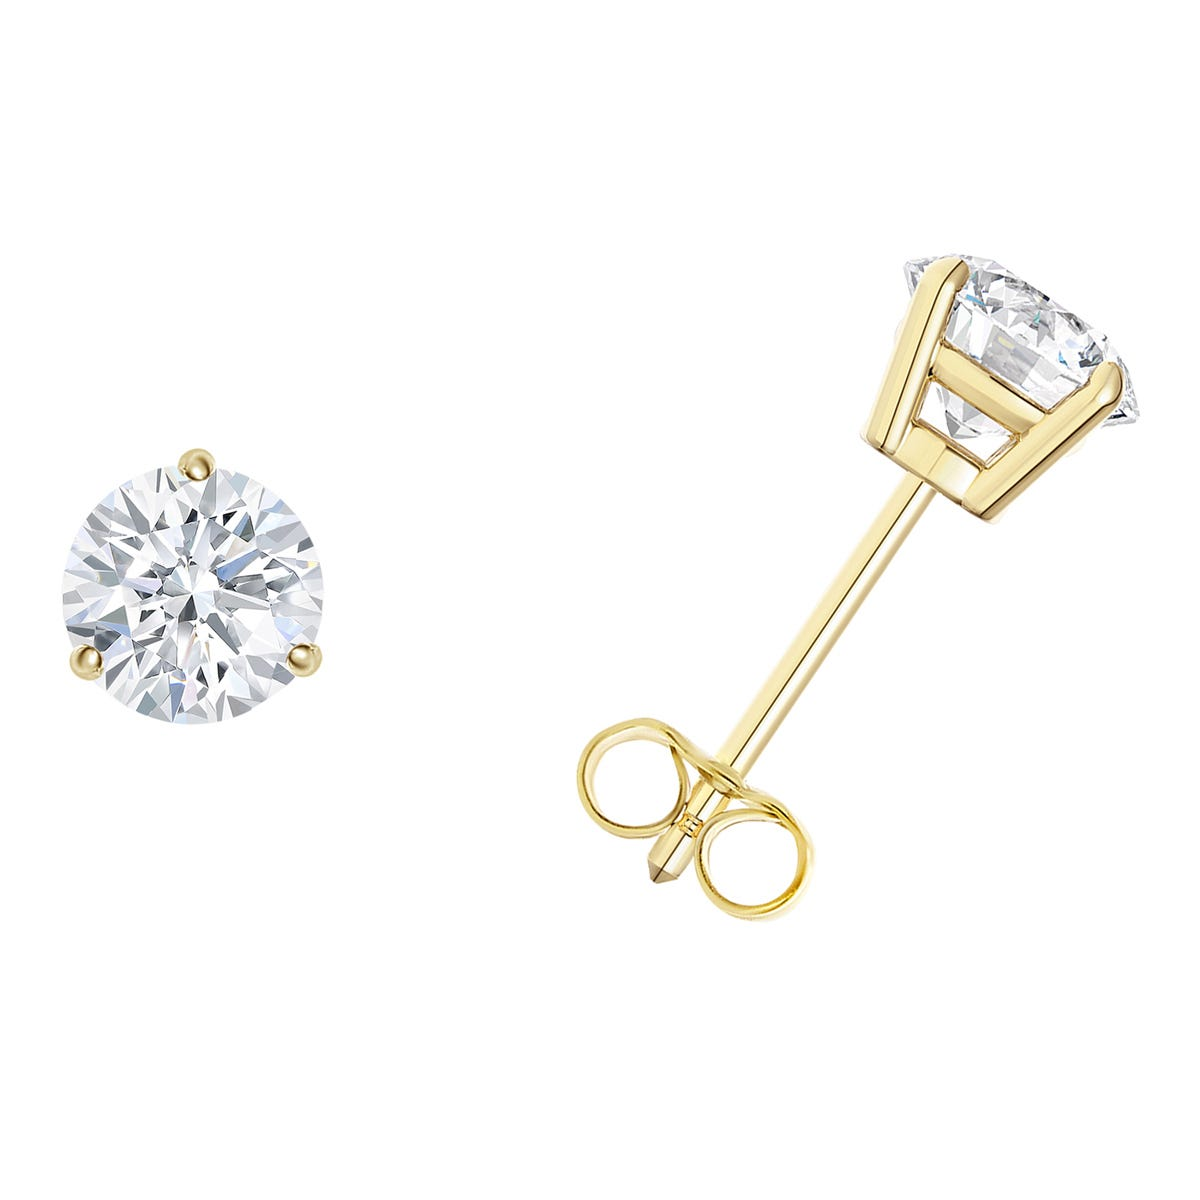 1/5 CTTW Round Diamond Solitaire Stud Earrings in 10K Yellow Gold 3-Prong IGI Certified I2